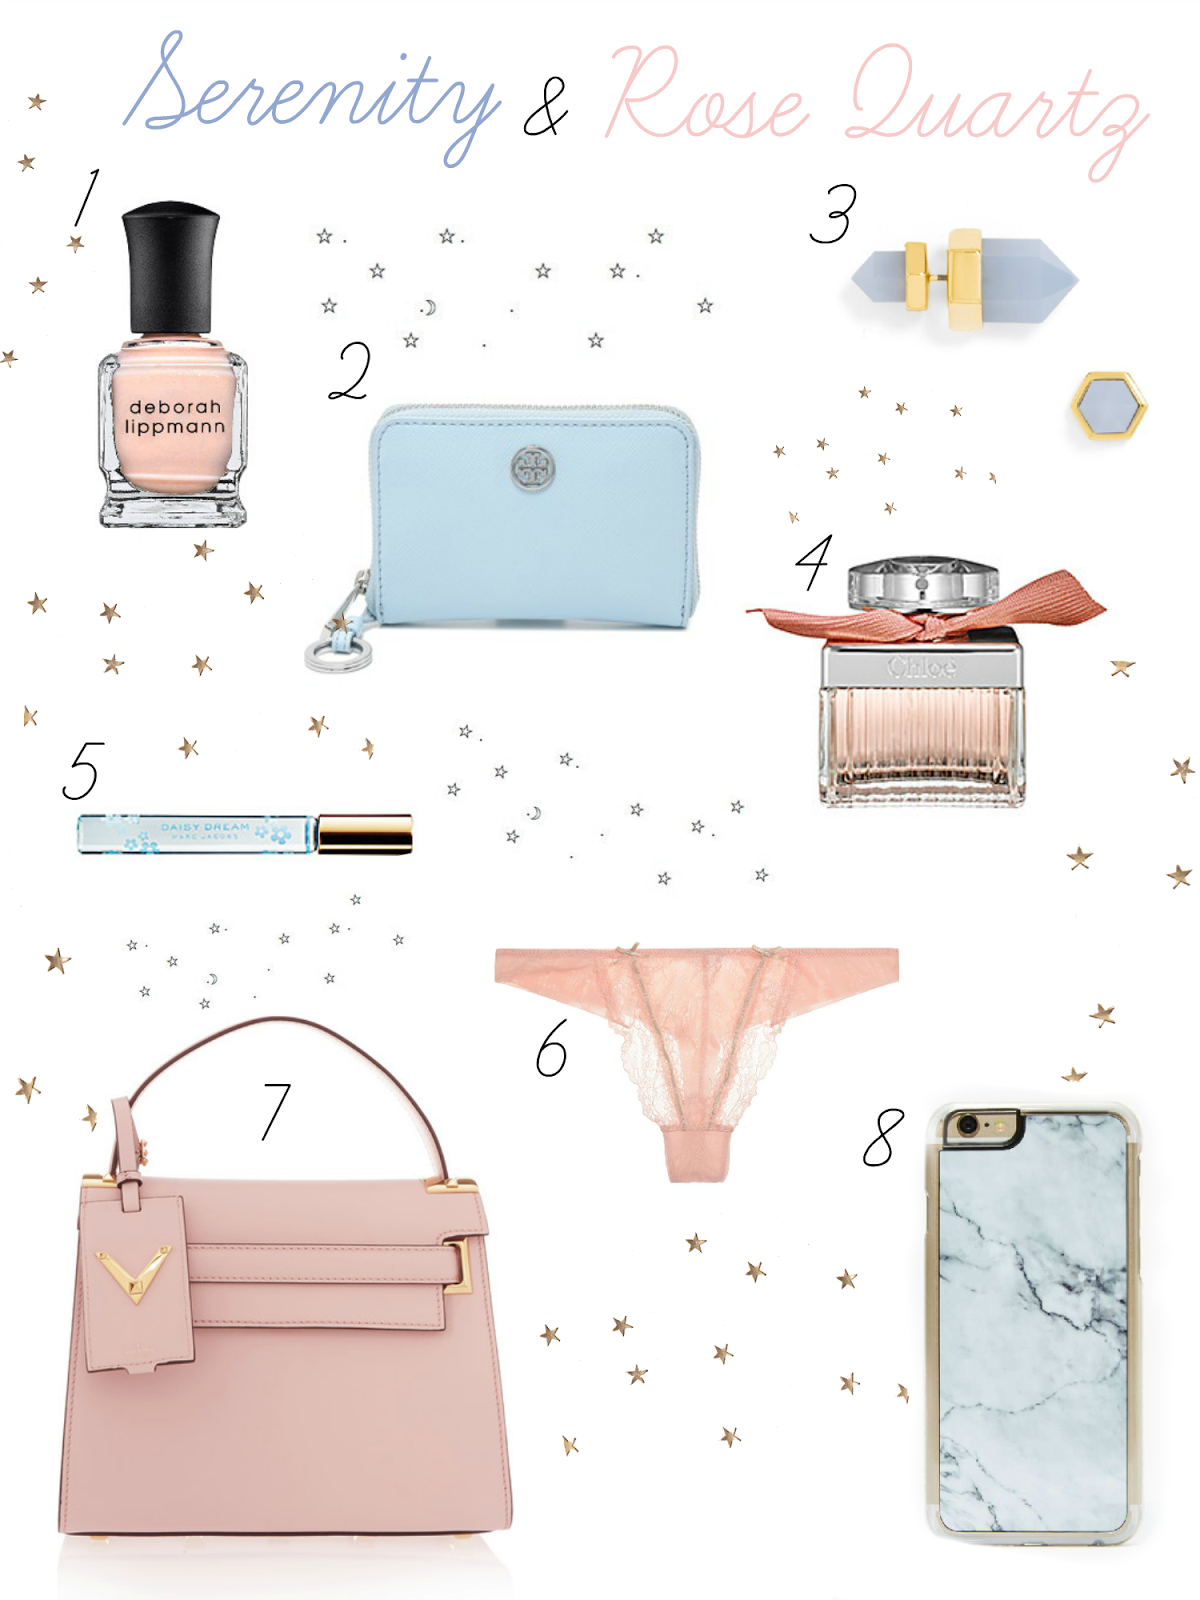 Pantone Colors 2016: Rose Quartz + Serenity